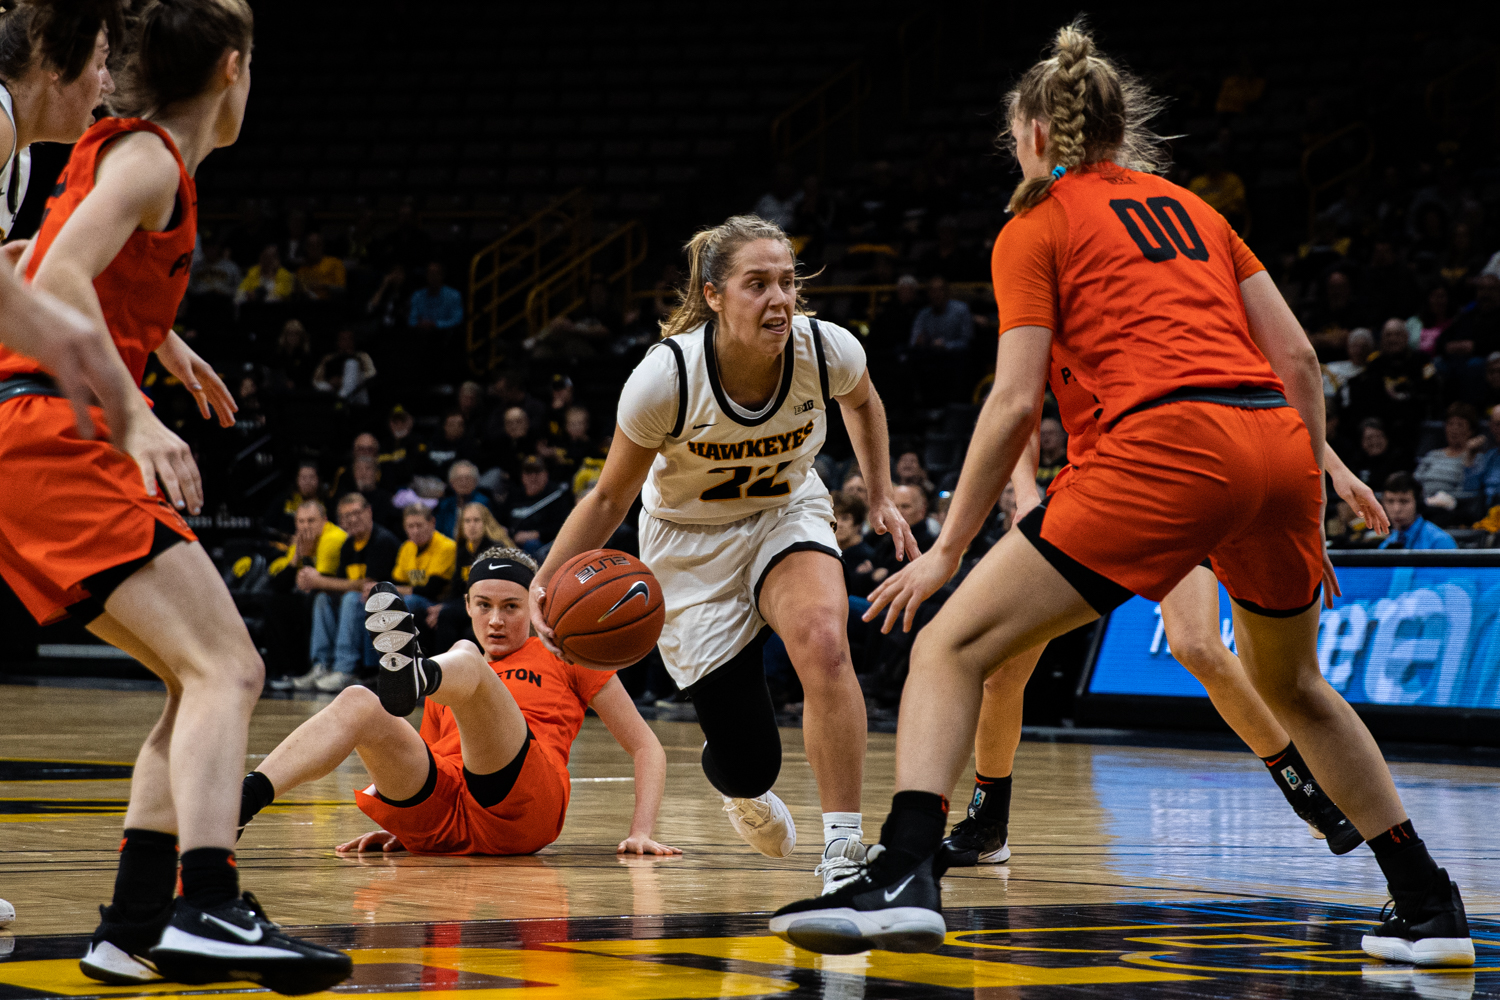 Iowa guard Kathleen Doyle dribbles during a women's basketball game between Iowa and Princeton at Carver-Hawkeye Arena on Wednesday, November 20, 2019. The Hawkeyes defeated the Tigers, 77-75 in overtime.